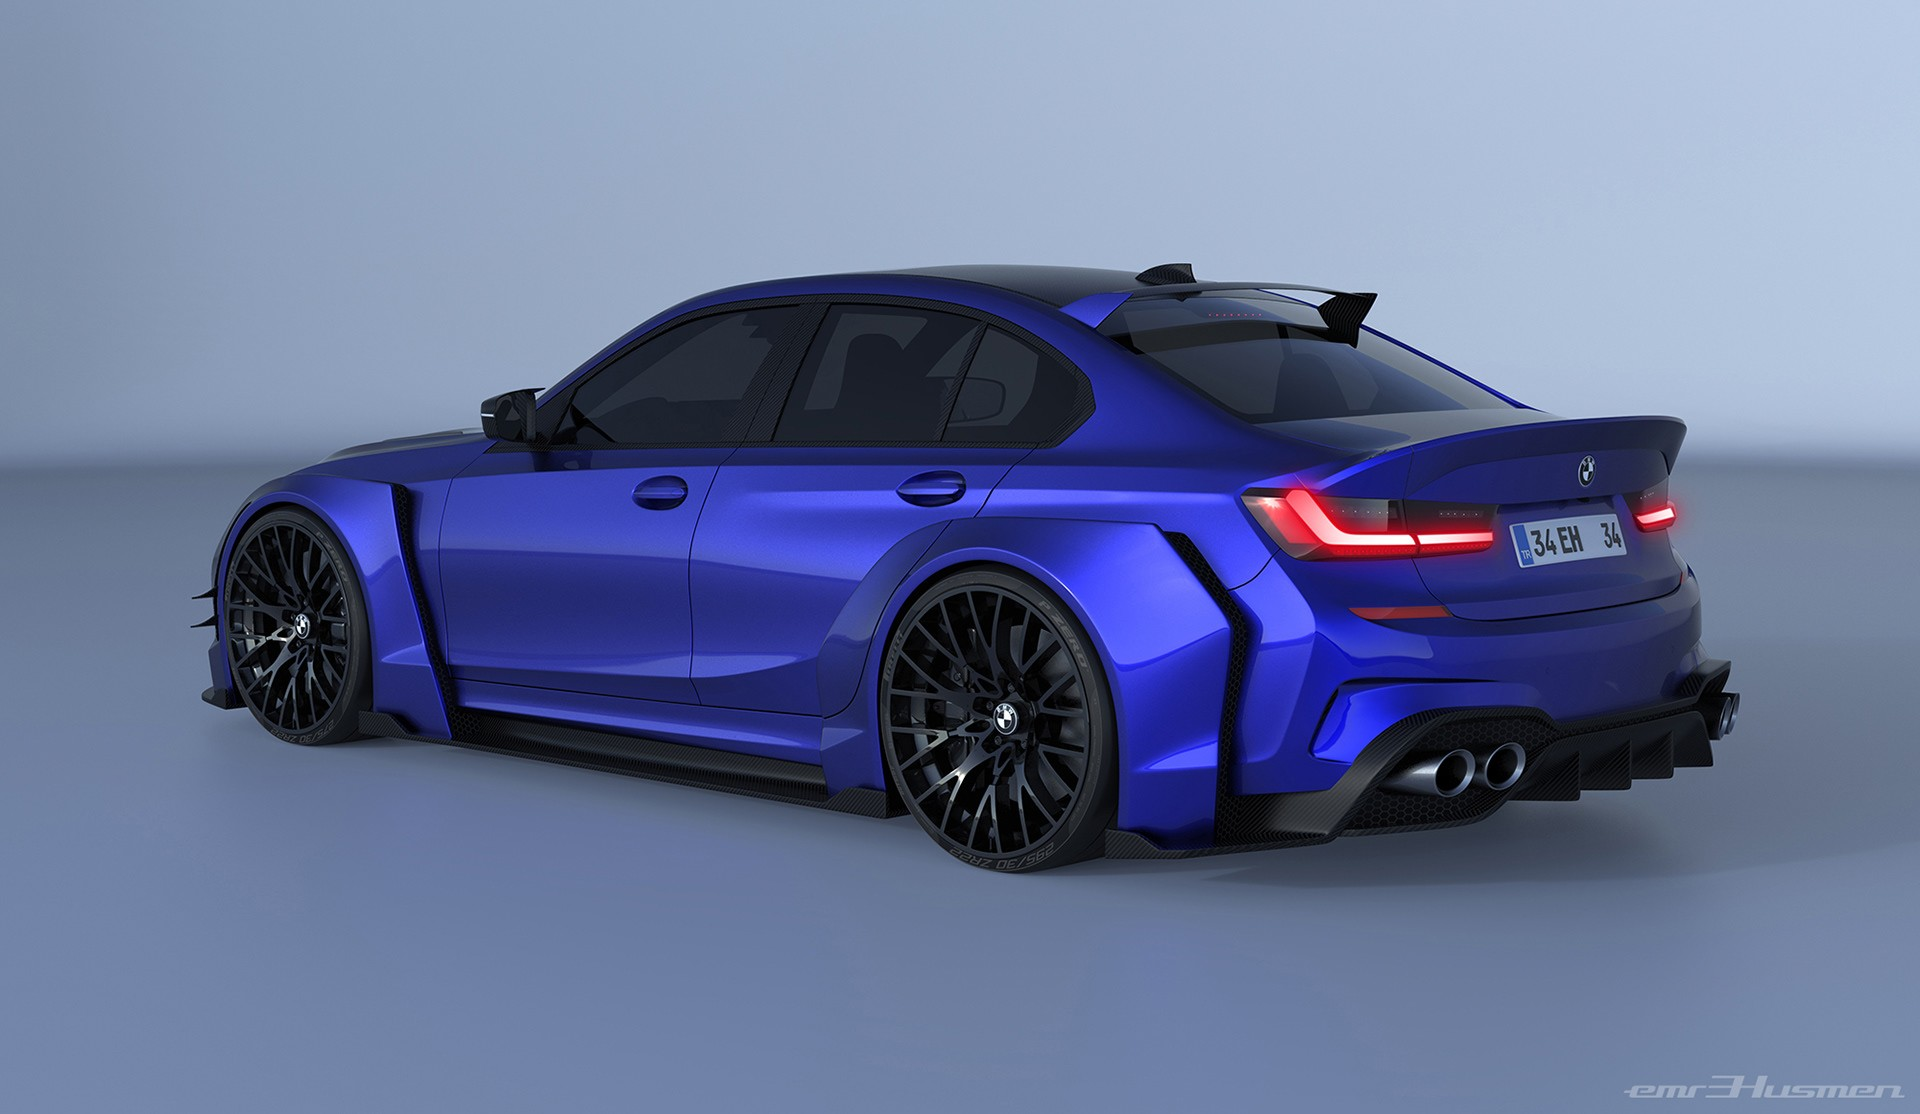 2020 BMW 3 Series Rendered With Race Car Concept Kit ...